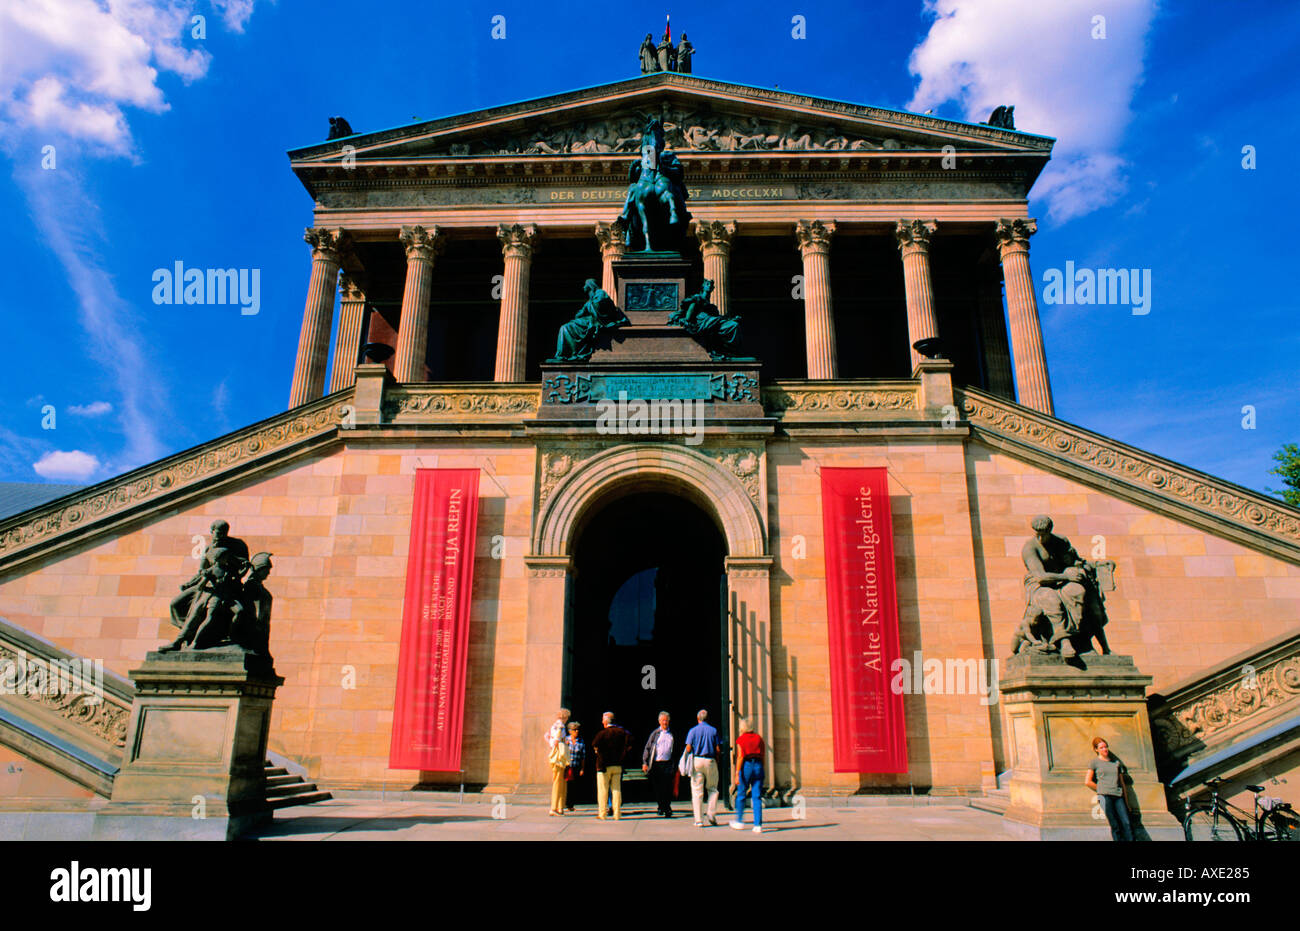 Old National Gallery Alte Nationalgalerie Berlin Germany Stock Photo